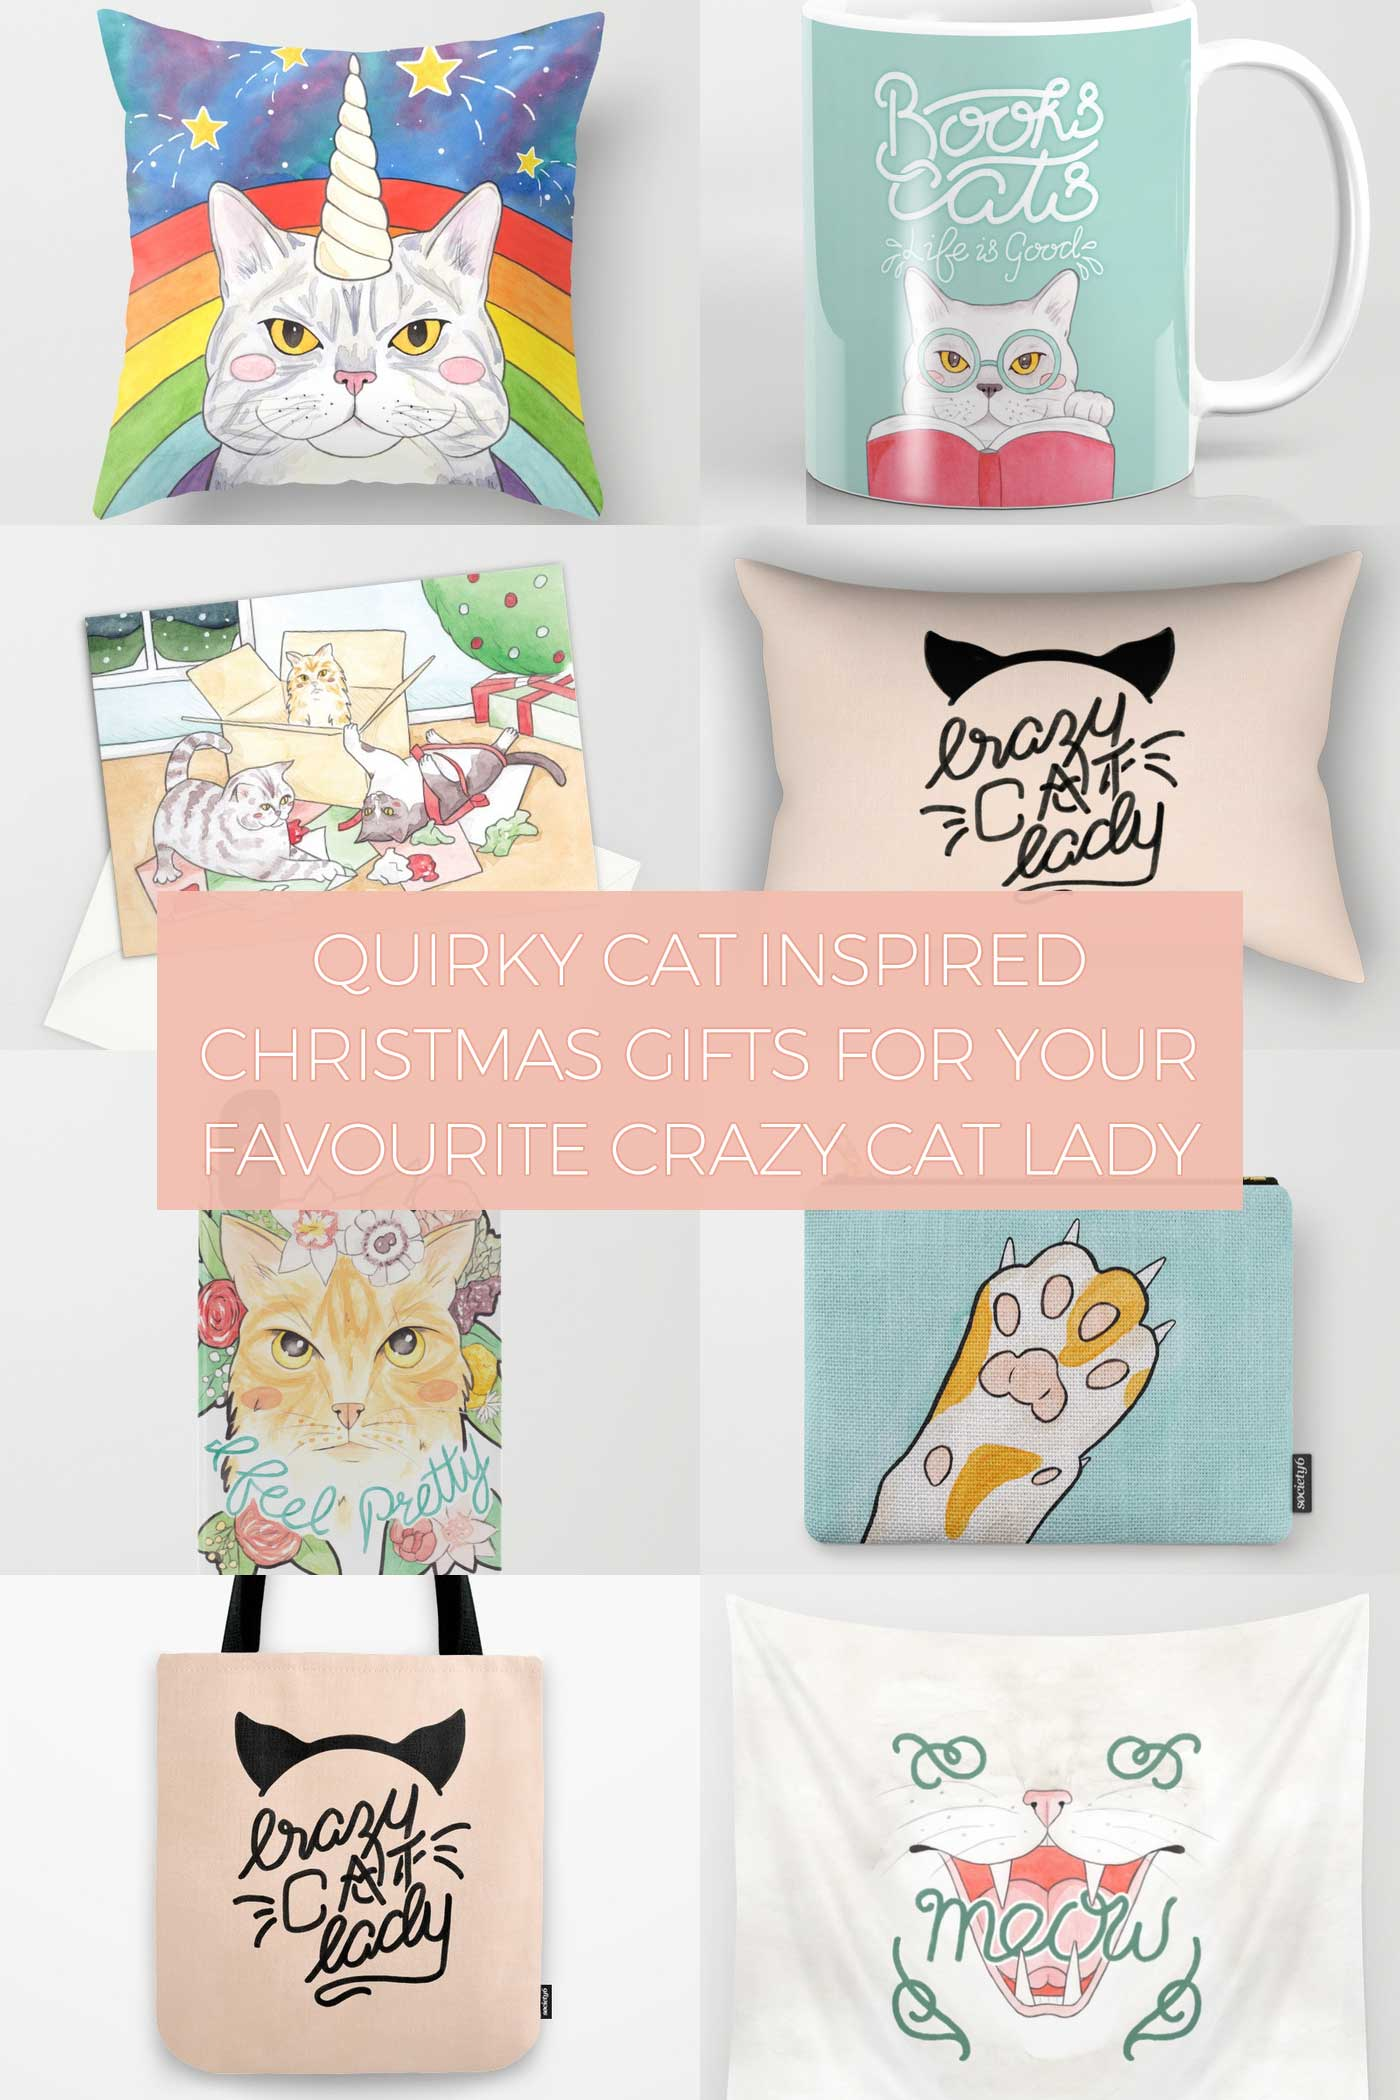 Quirky Cat Inspired Christmas Gifts for your Favourite Crazy Cat Lady from Redbubble, Society 6 & Art Wow